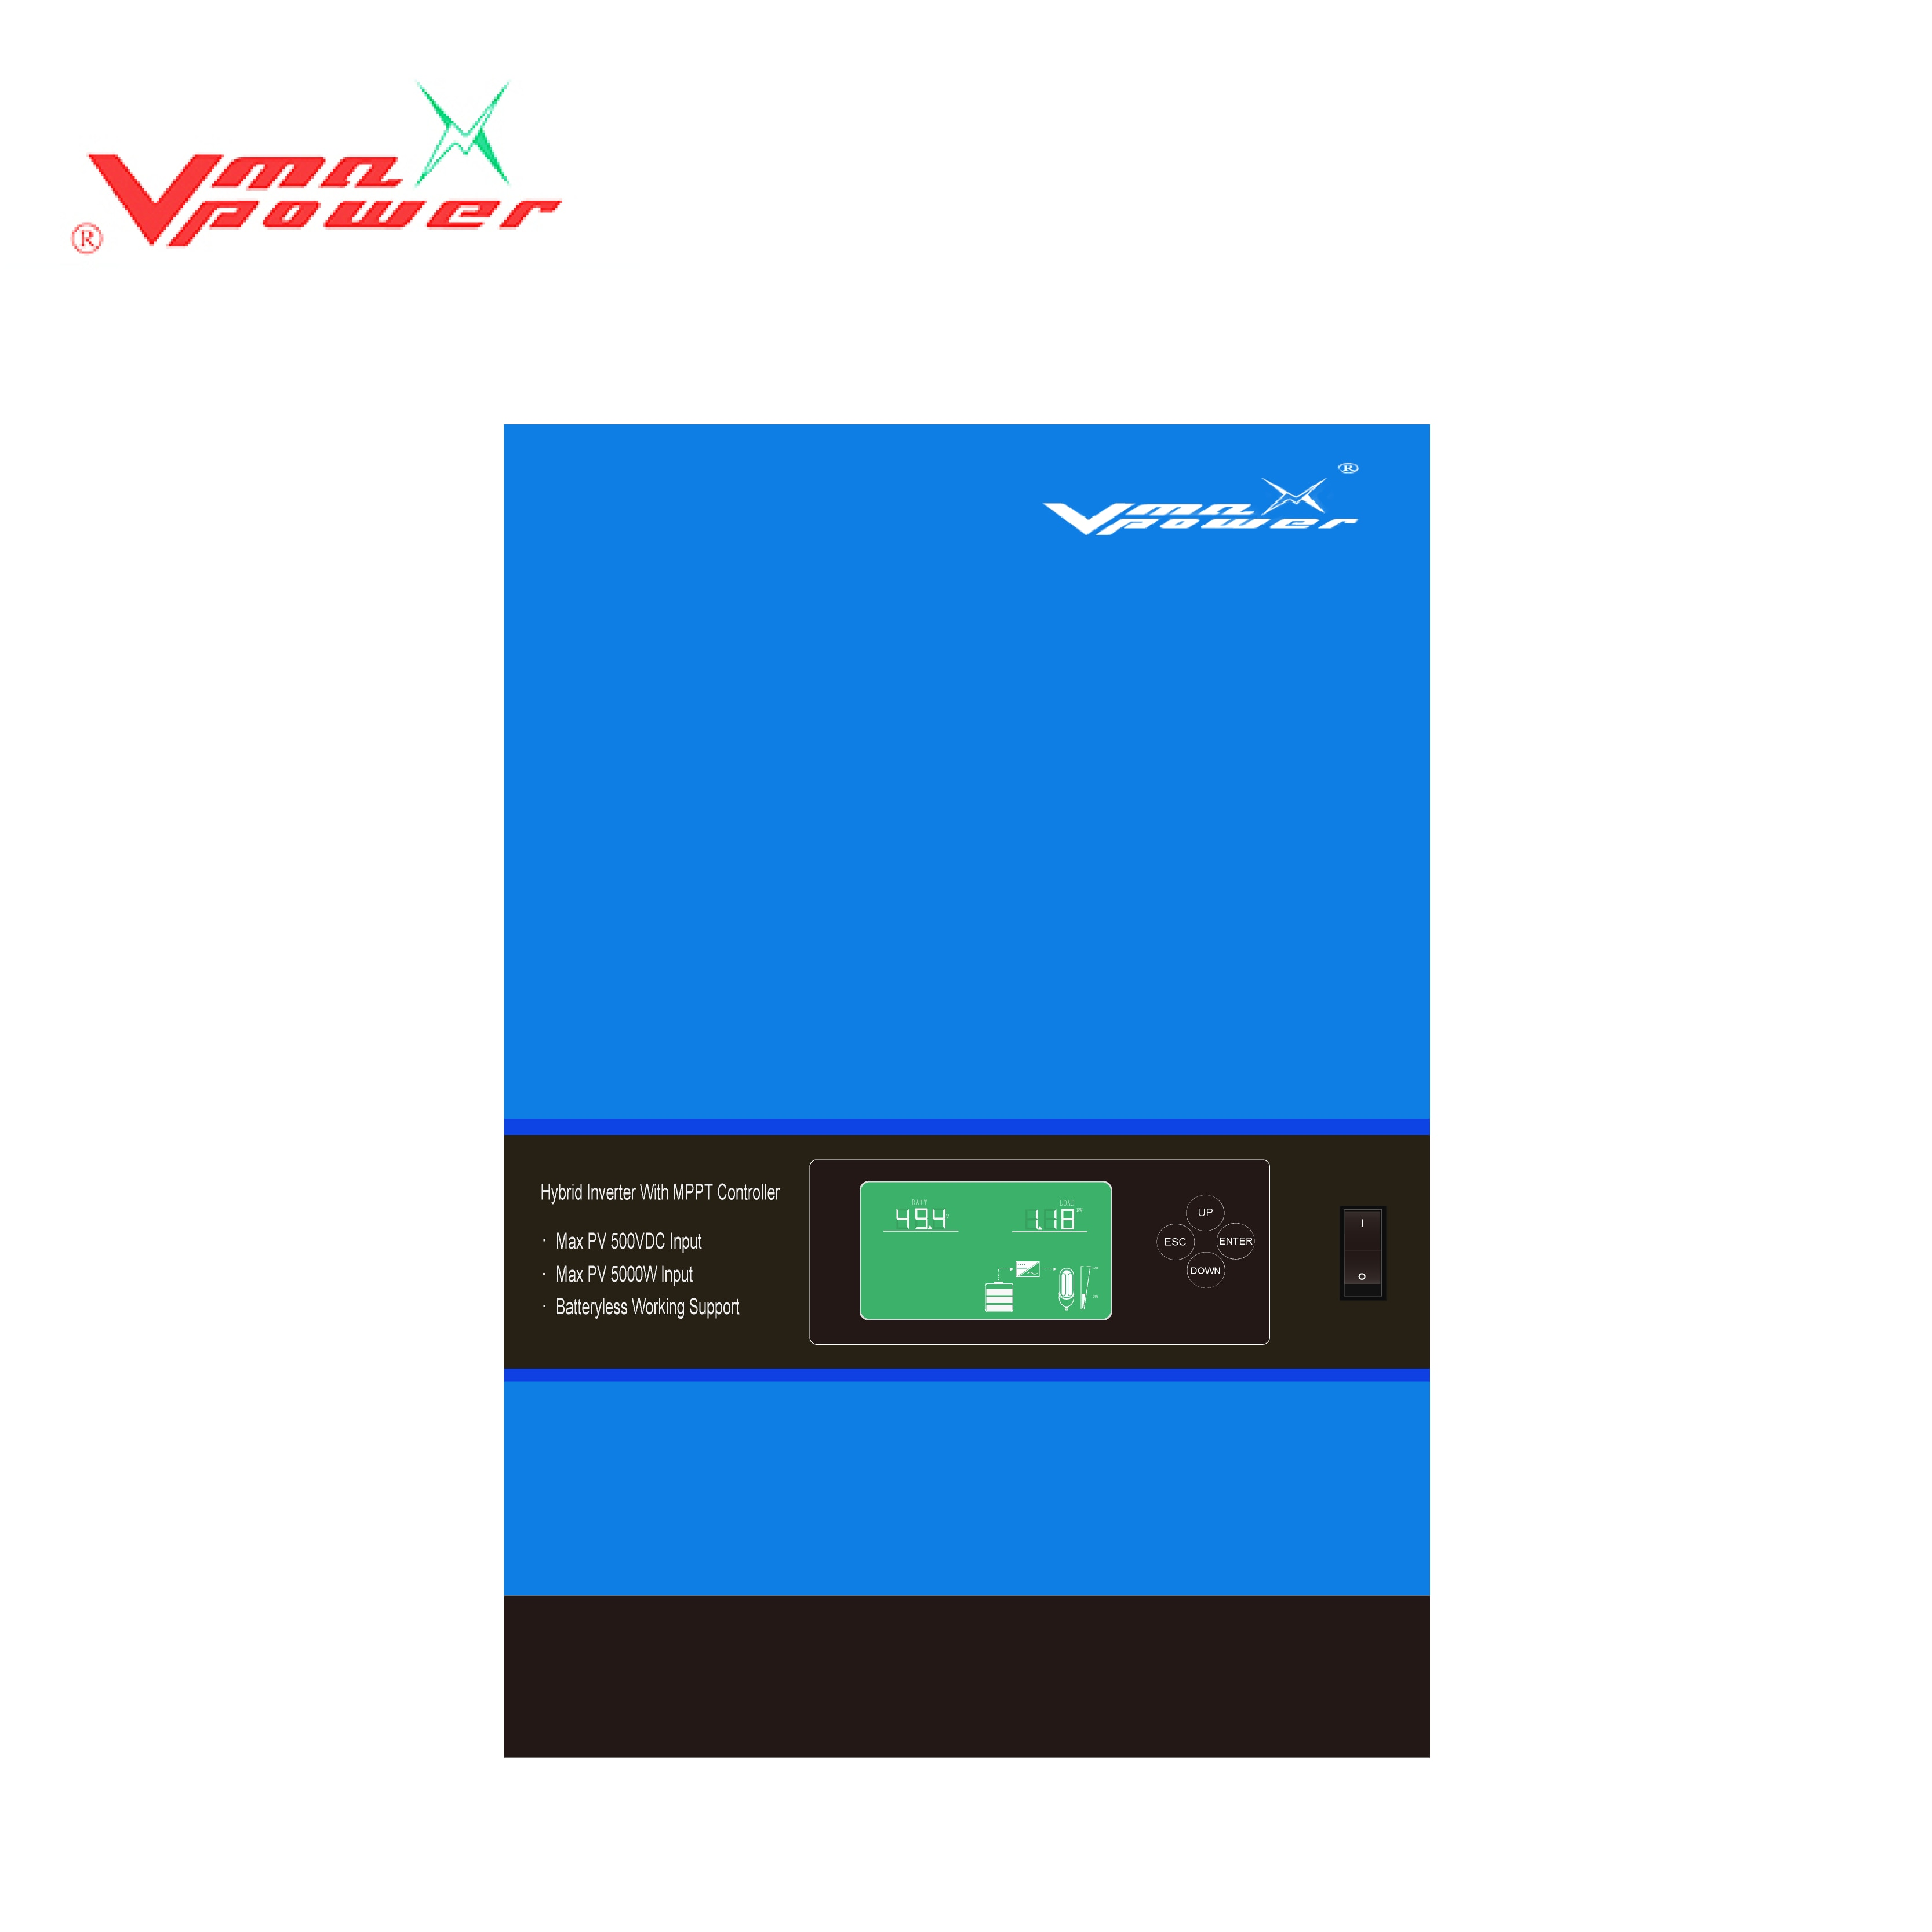 Vmaxpower 3Kva/5Kva 500Vdc hybrid solar inverter with MPPT charger work without battery for home and government solar system